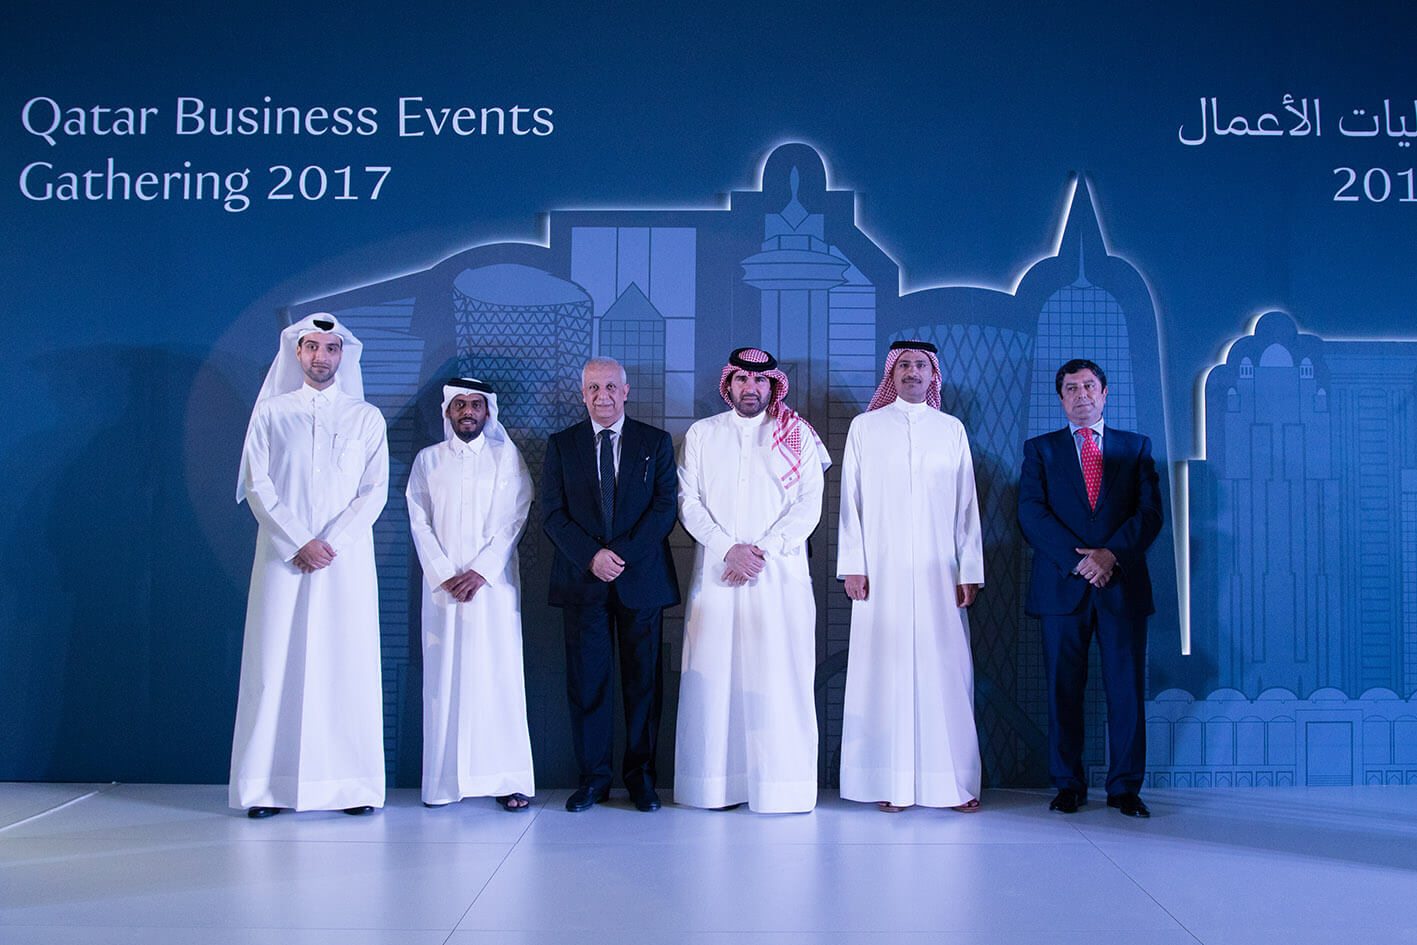 BUSINESS EVENTS GUIDE LAUNCH